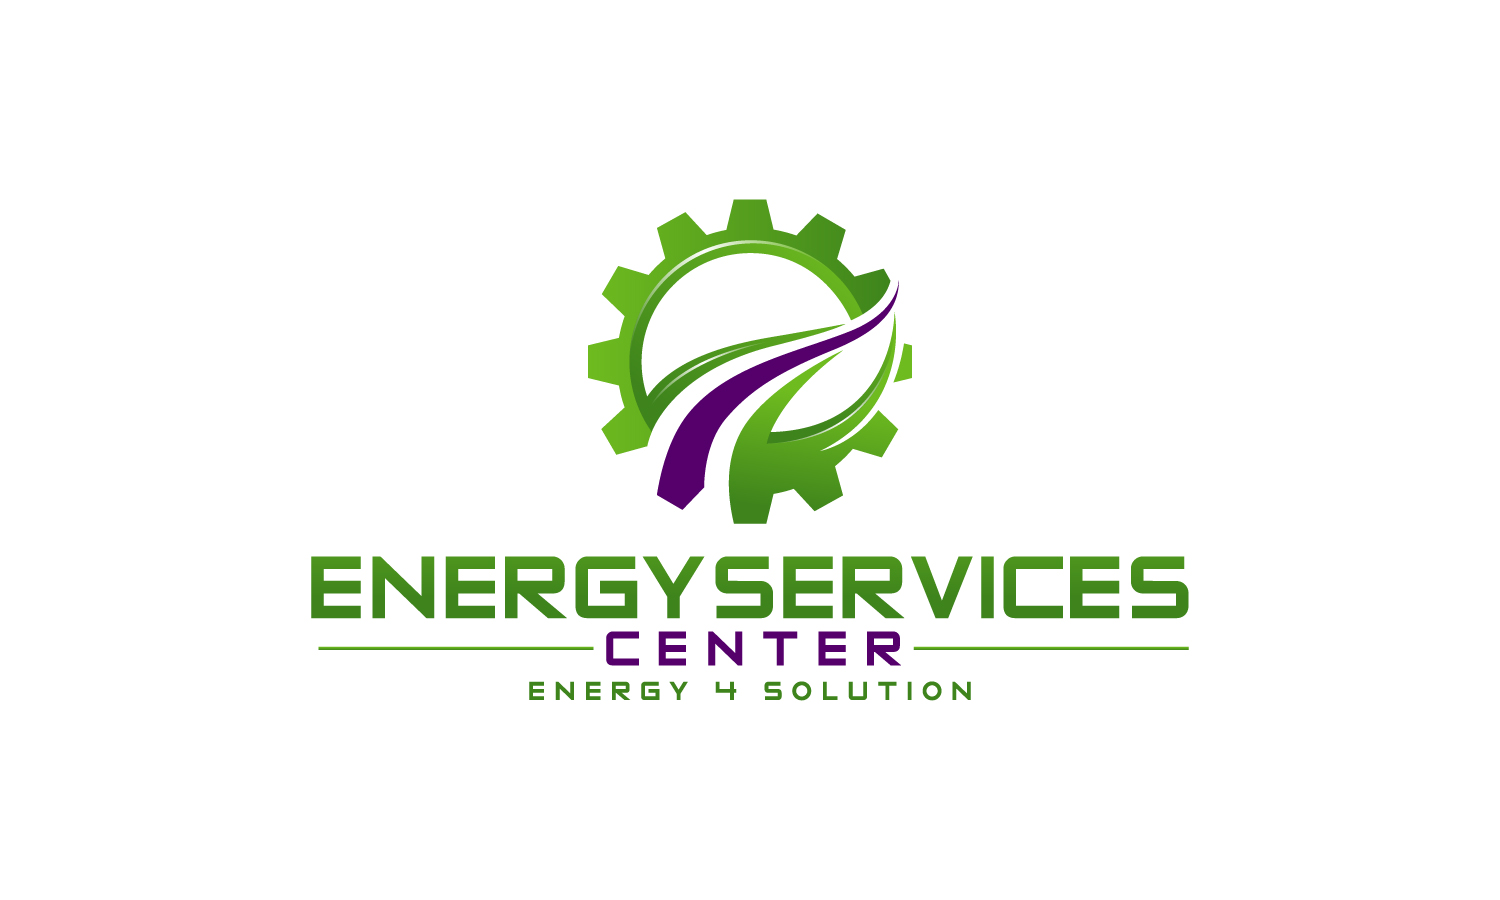 Energy services center